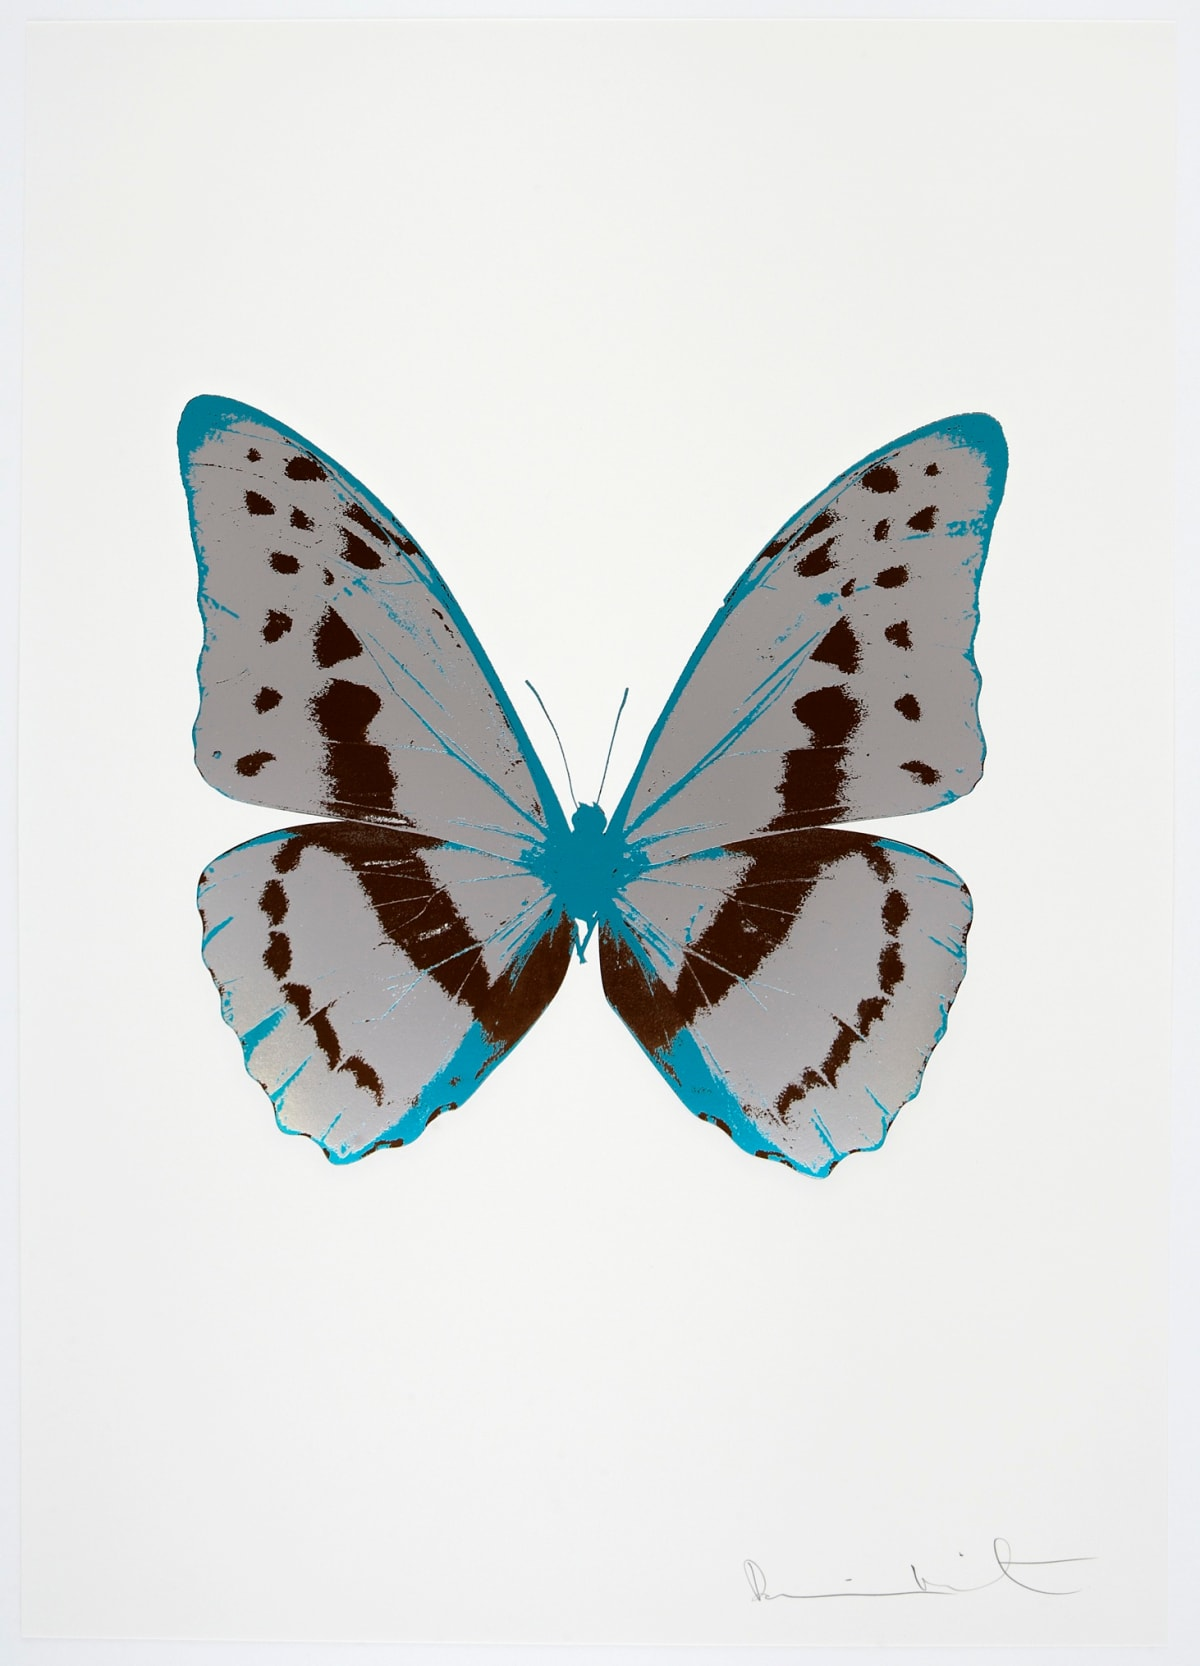 Damien Hirst The Souls III - Silver Gloss/Chocolate/Topaz, 2010 3 colour foil block on 300gsm Arches 88 archival paper. Signed and numbered. Published by Paul Stolper and Other Criteria 72 x 51cm OC7974 / 660-77 Edition of 15